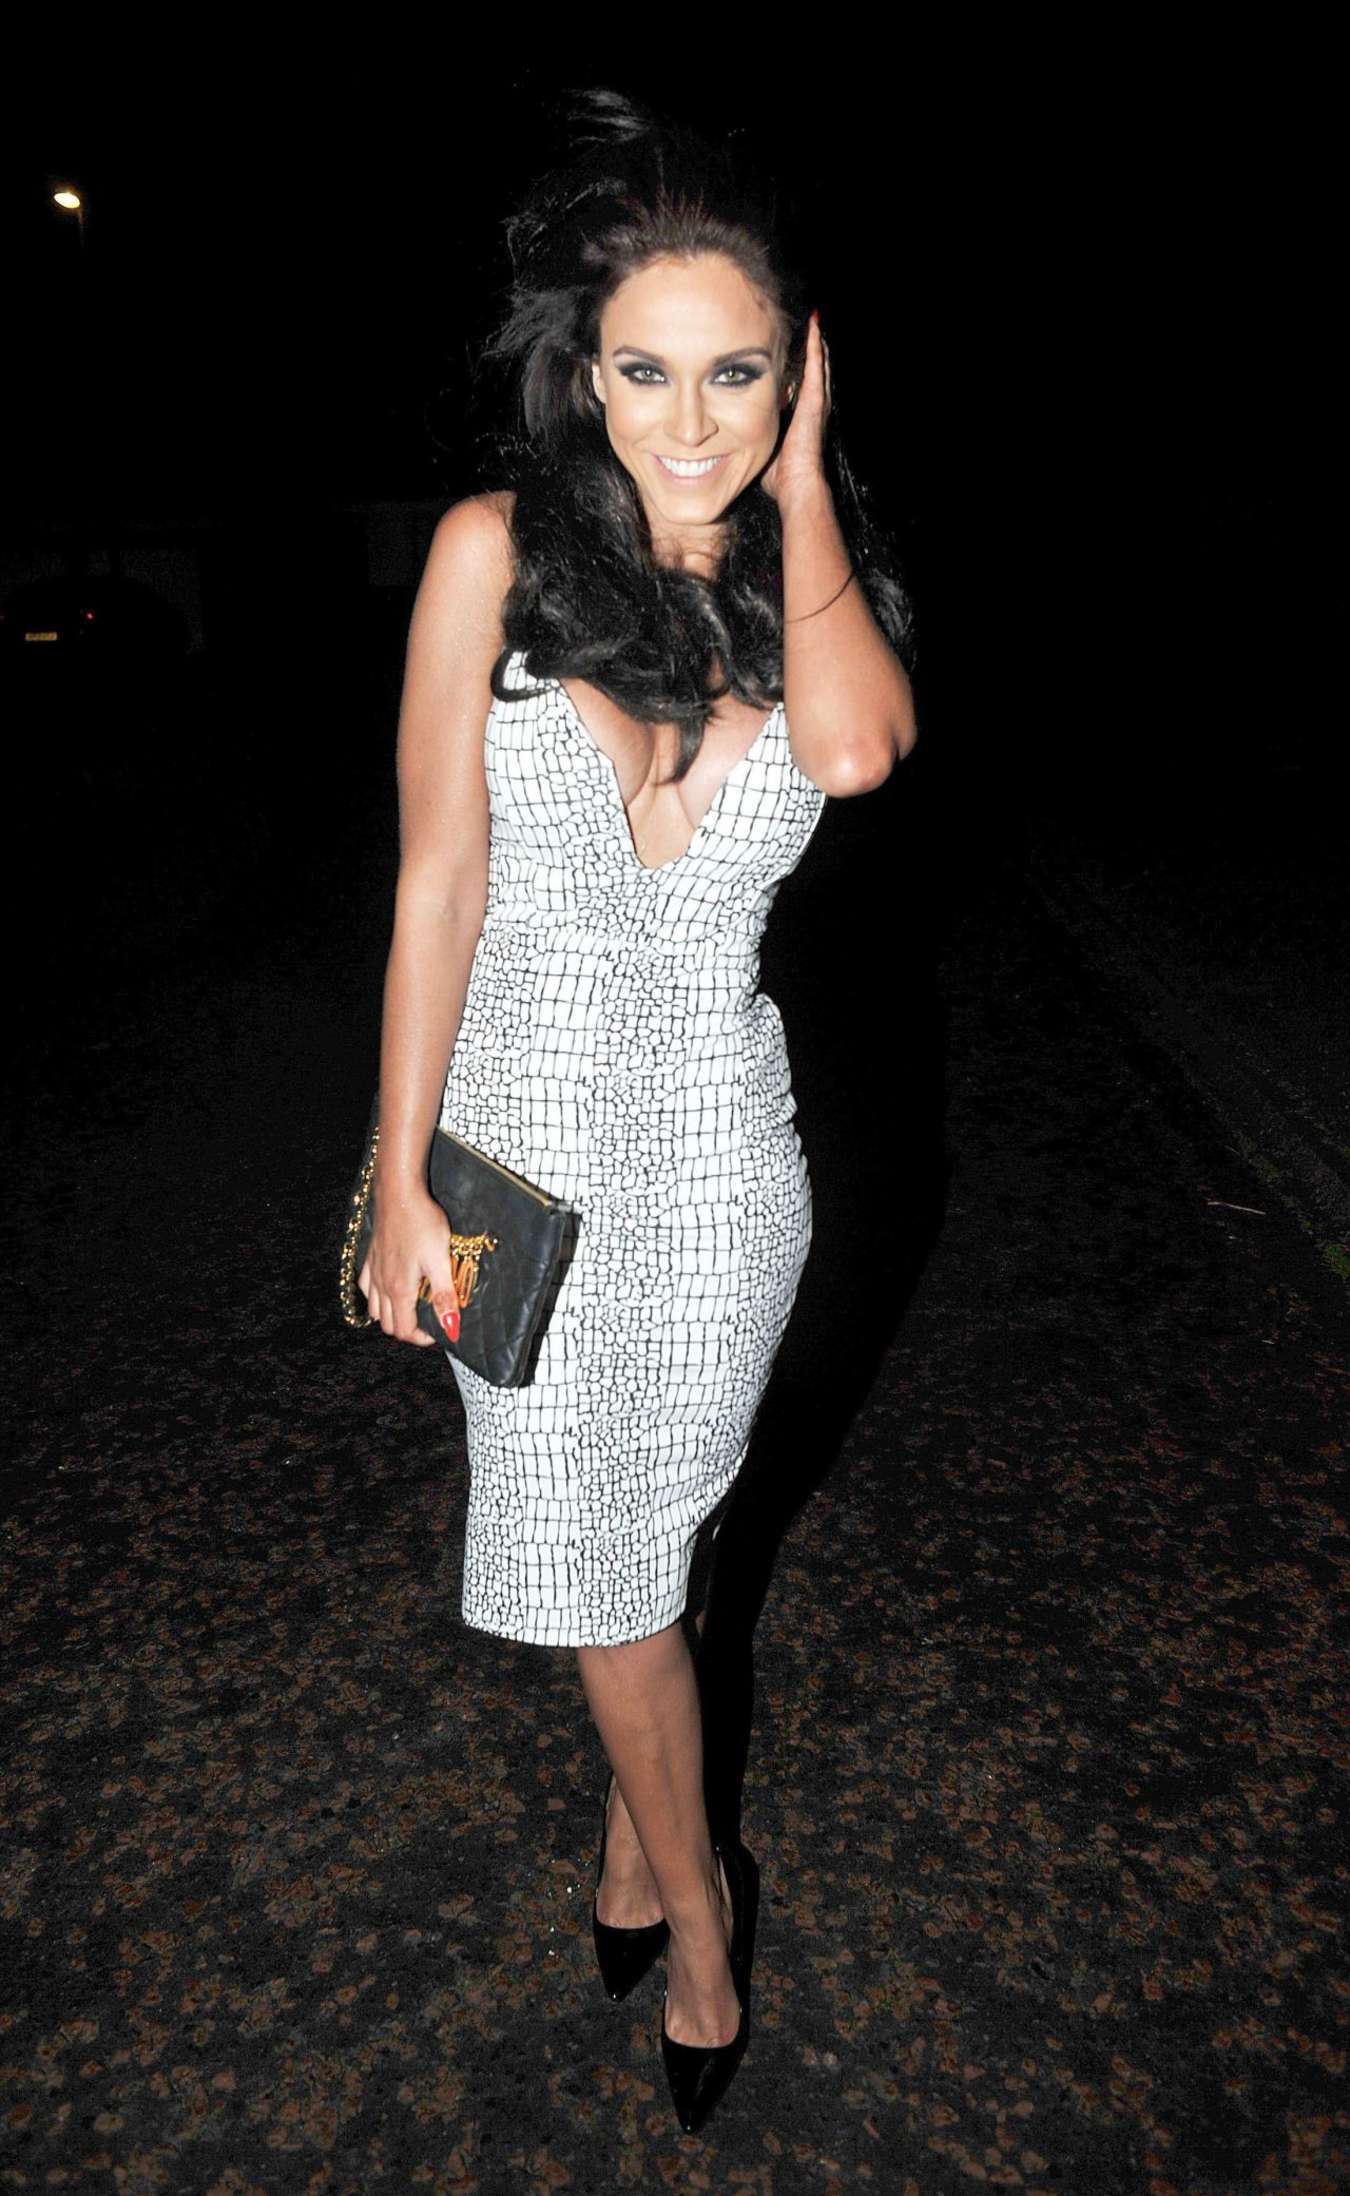 Vicky Pattison in Tight Dress Night Out in Manchester